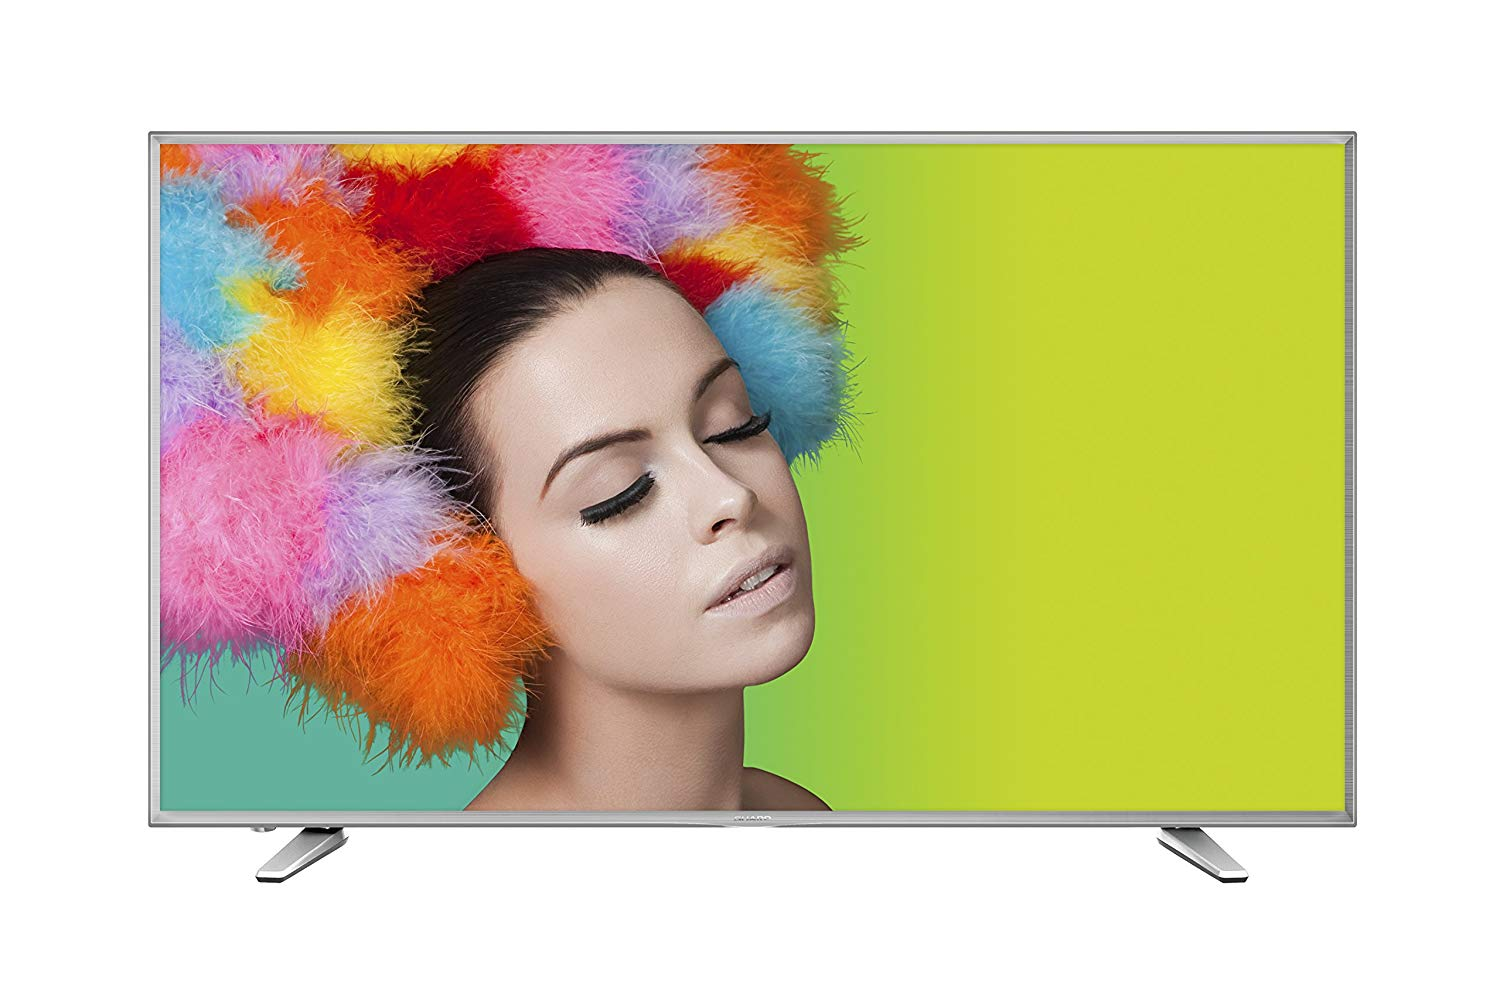 Sharp TV Reviews: What Buyers Should Know